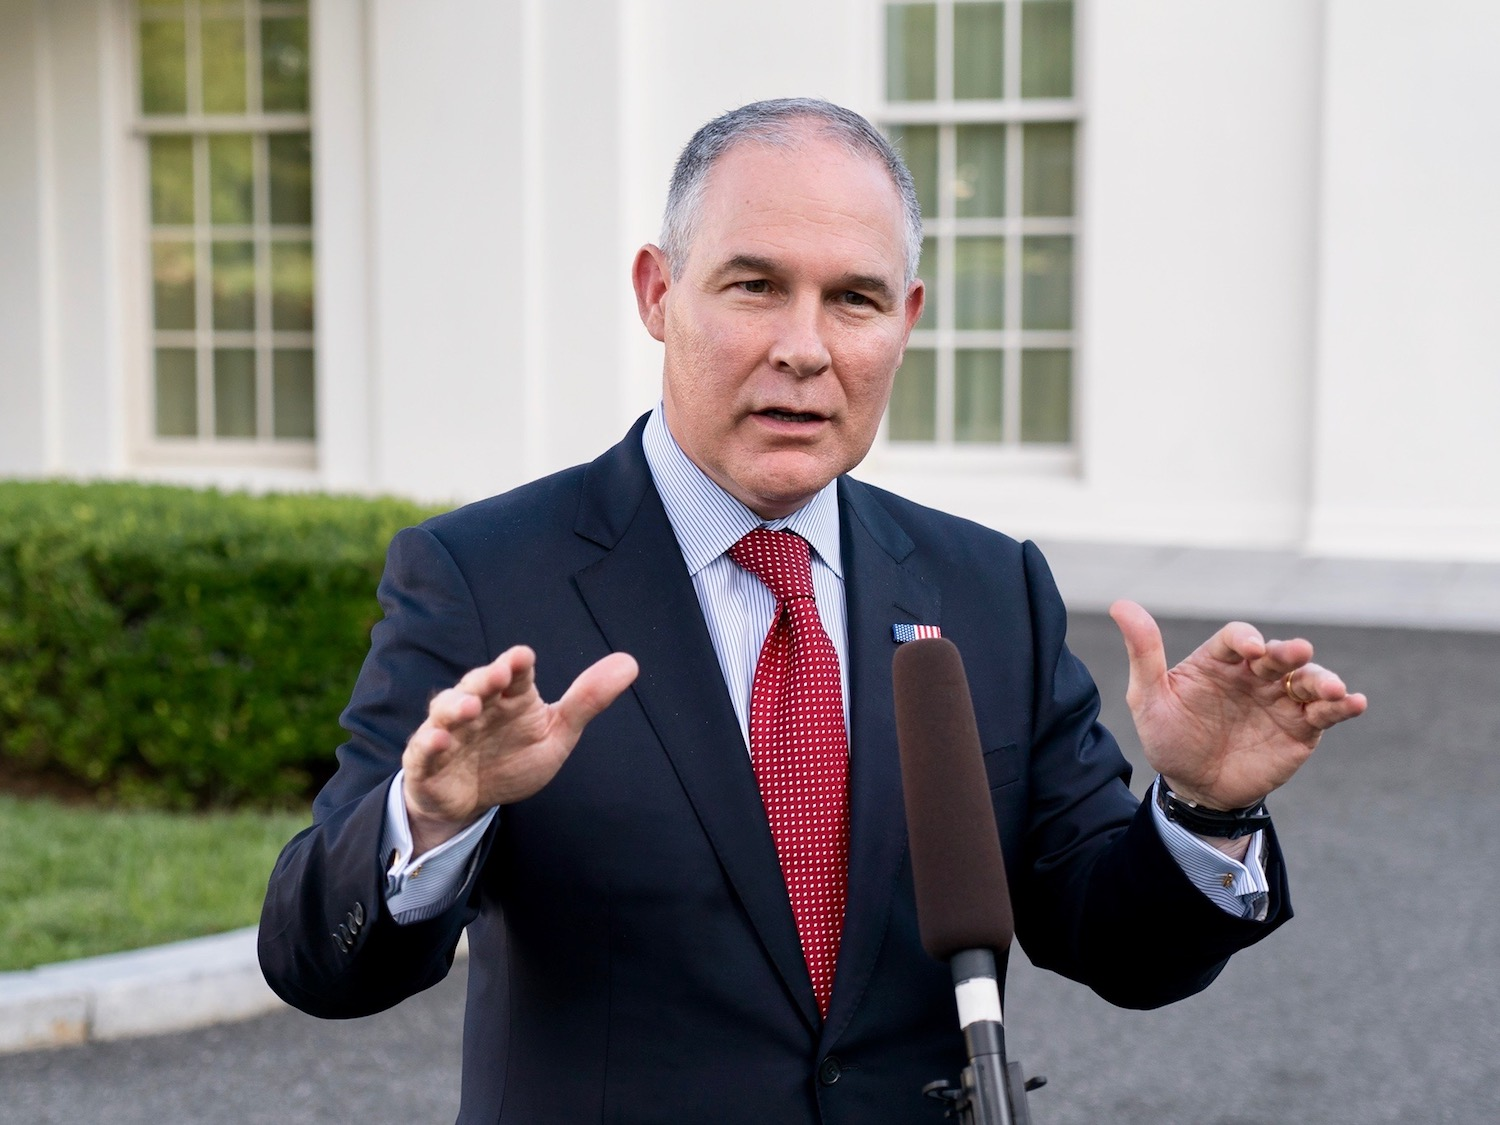 'Good riddance': Scott Pruitt steps down at Environmental Protection Agency